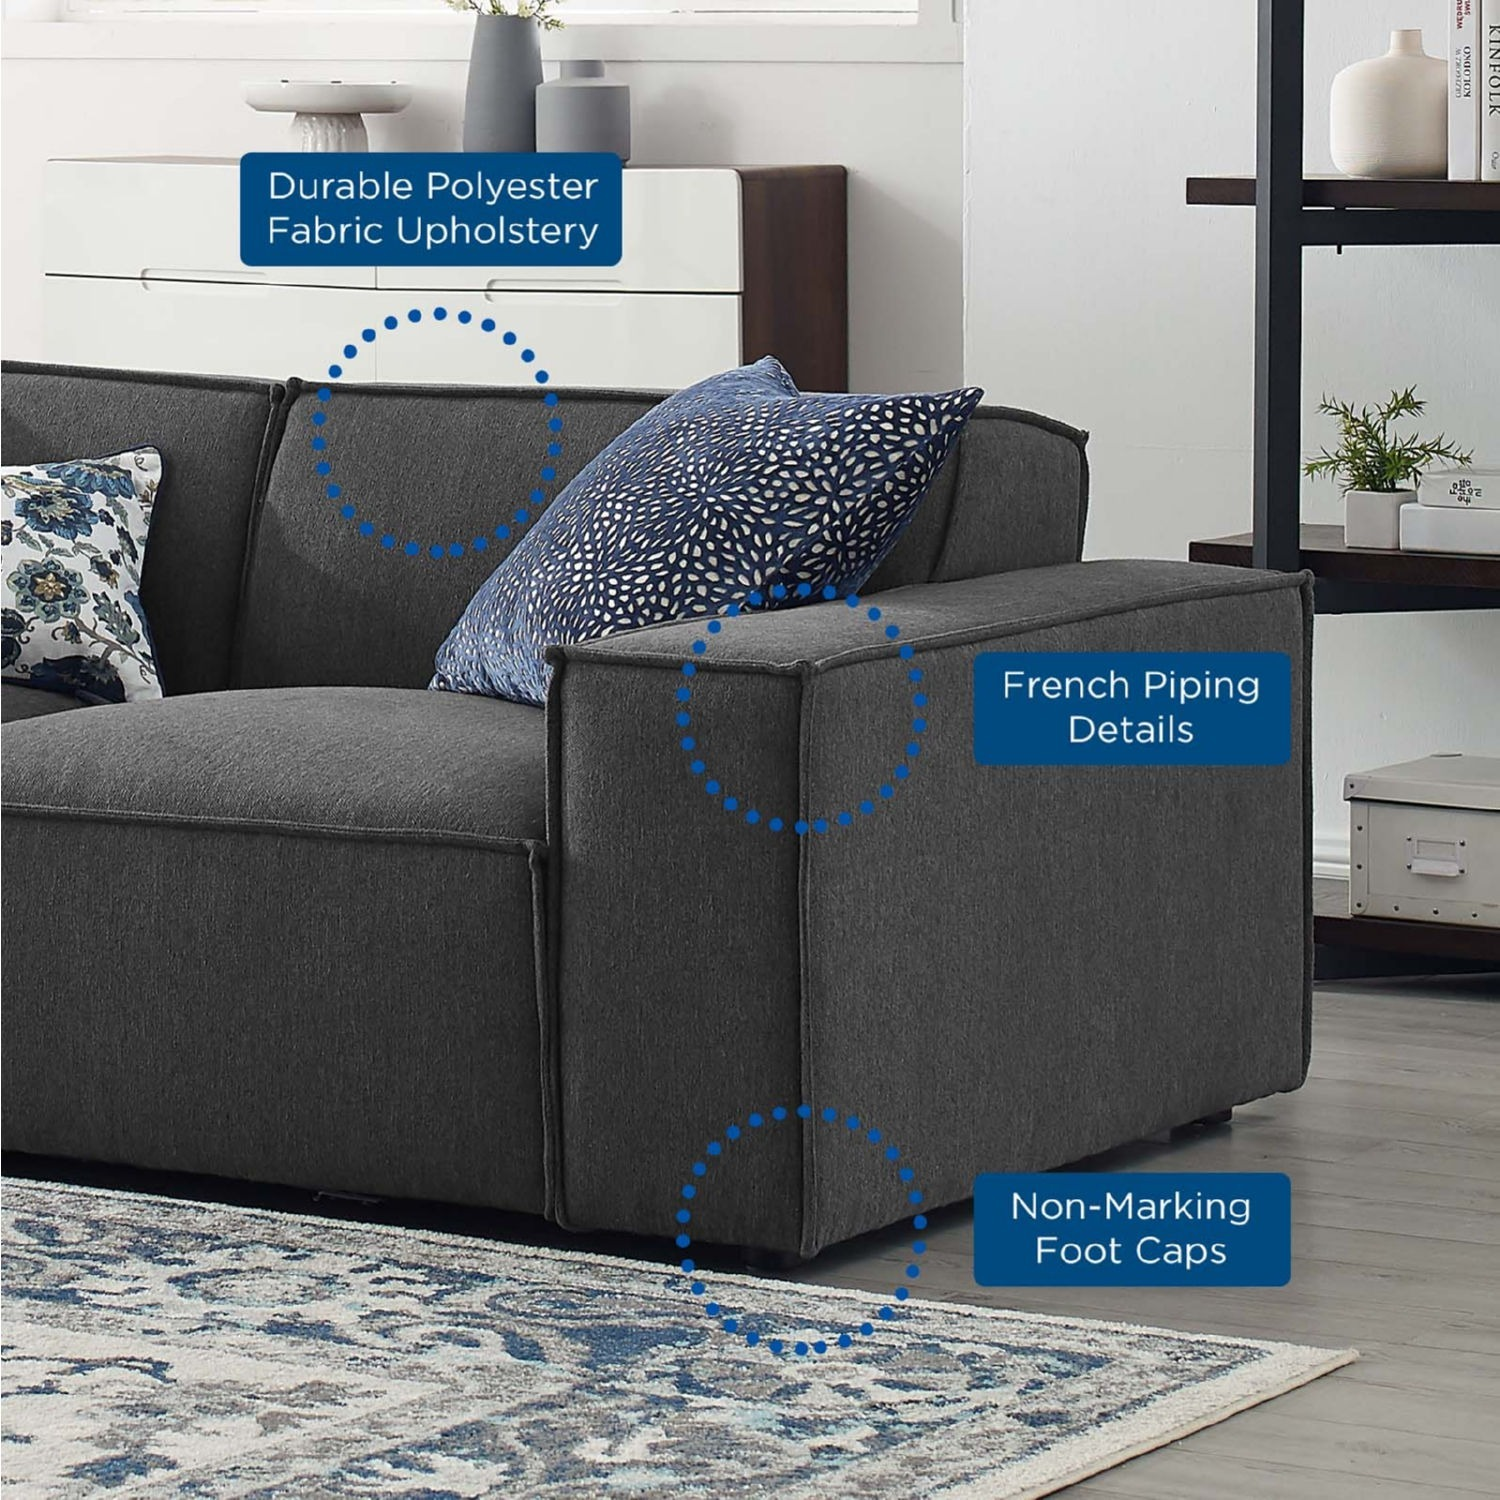 4-Piece Sectional Sofa In Charcoal Foam Padding - image-9